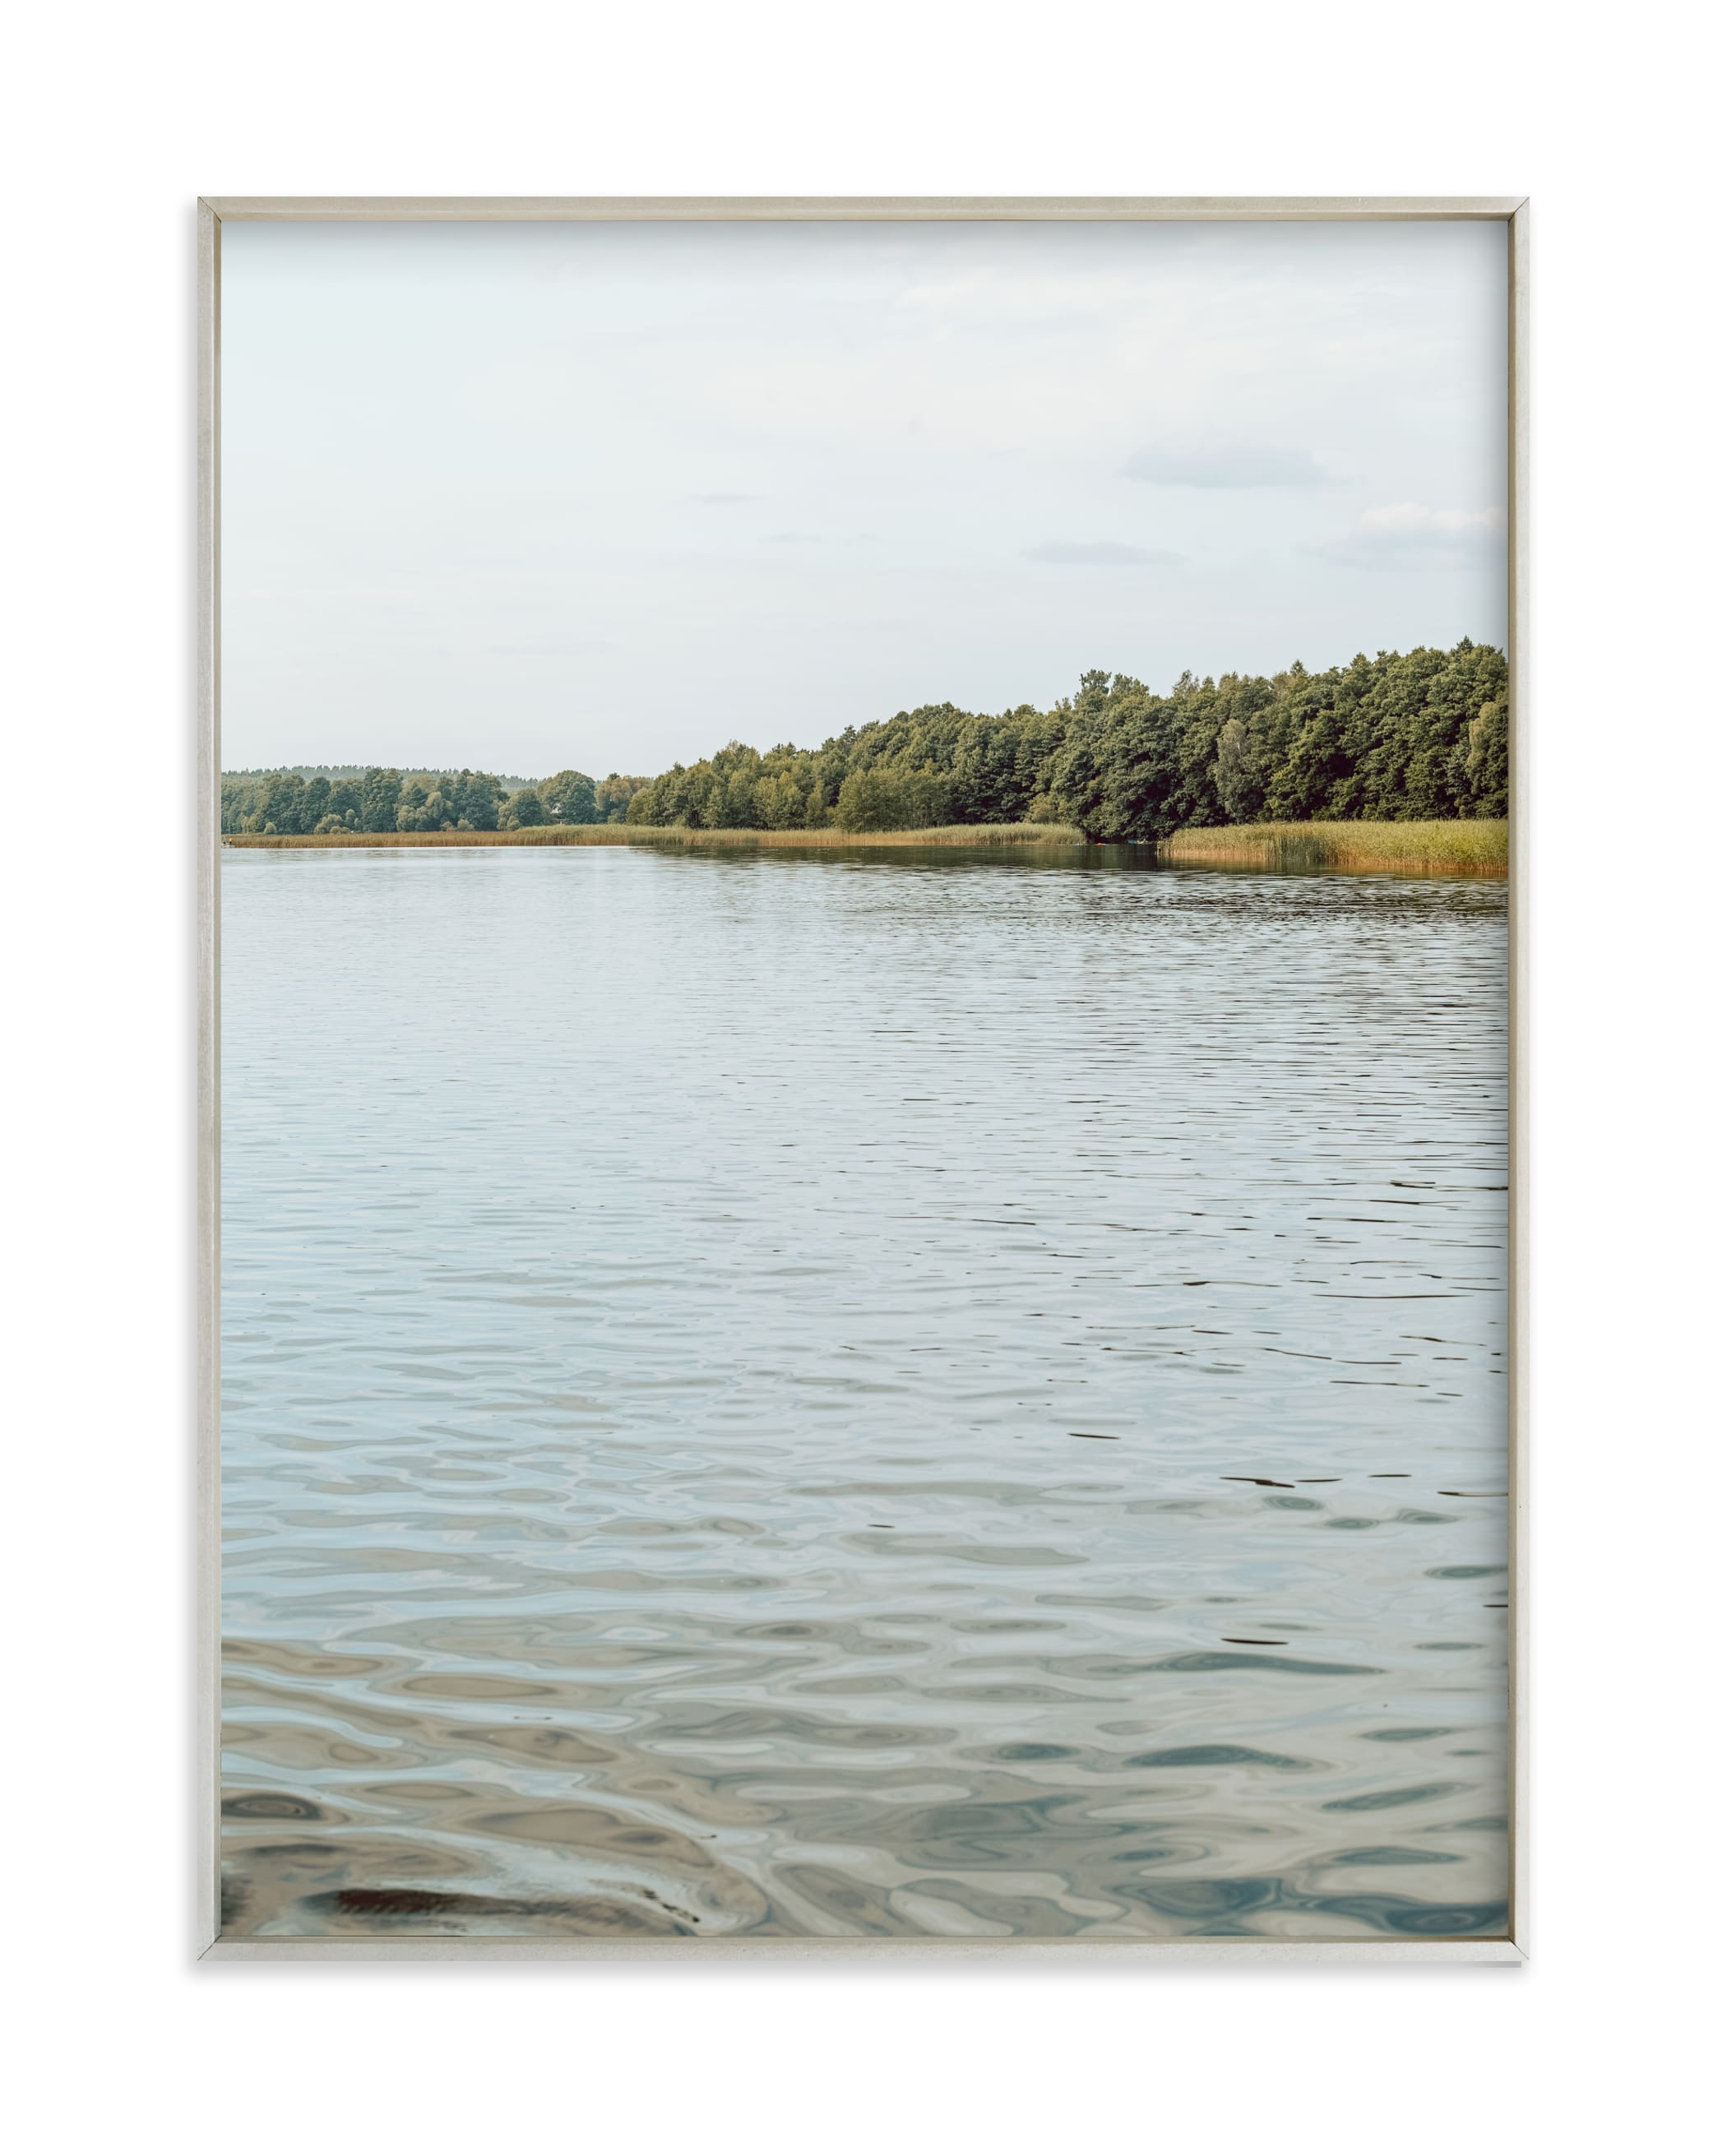 """Calm lake II"" by Lying on the grass in beautiful frame options and a variety of sizes."